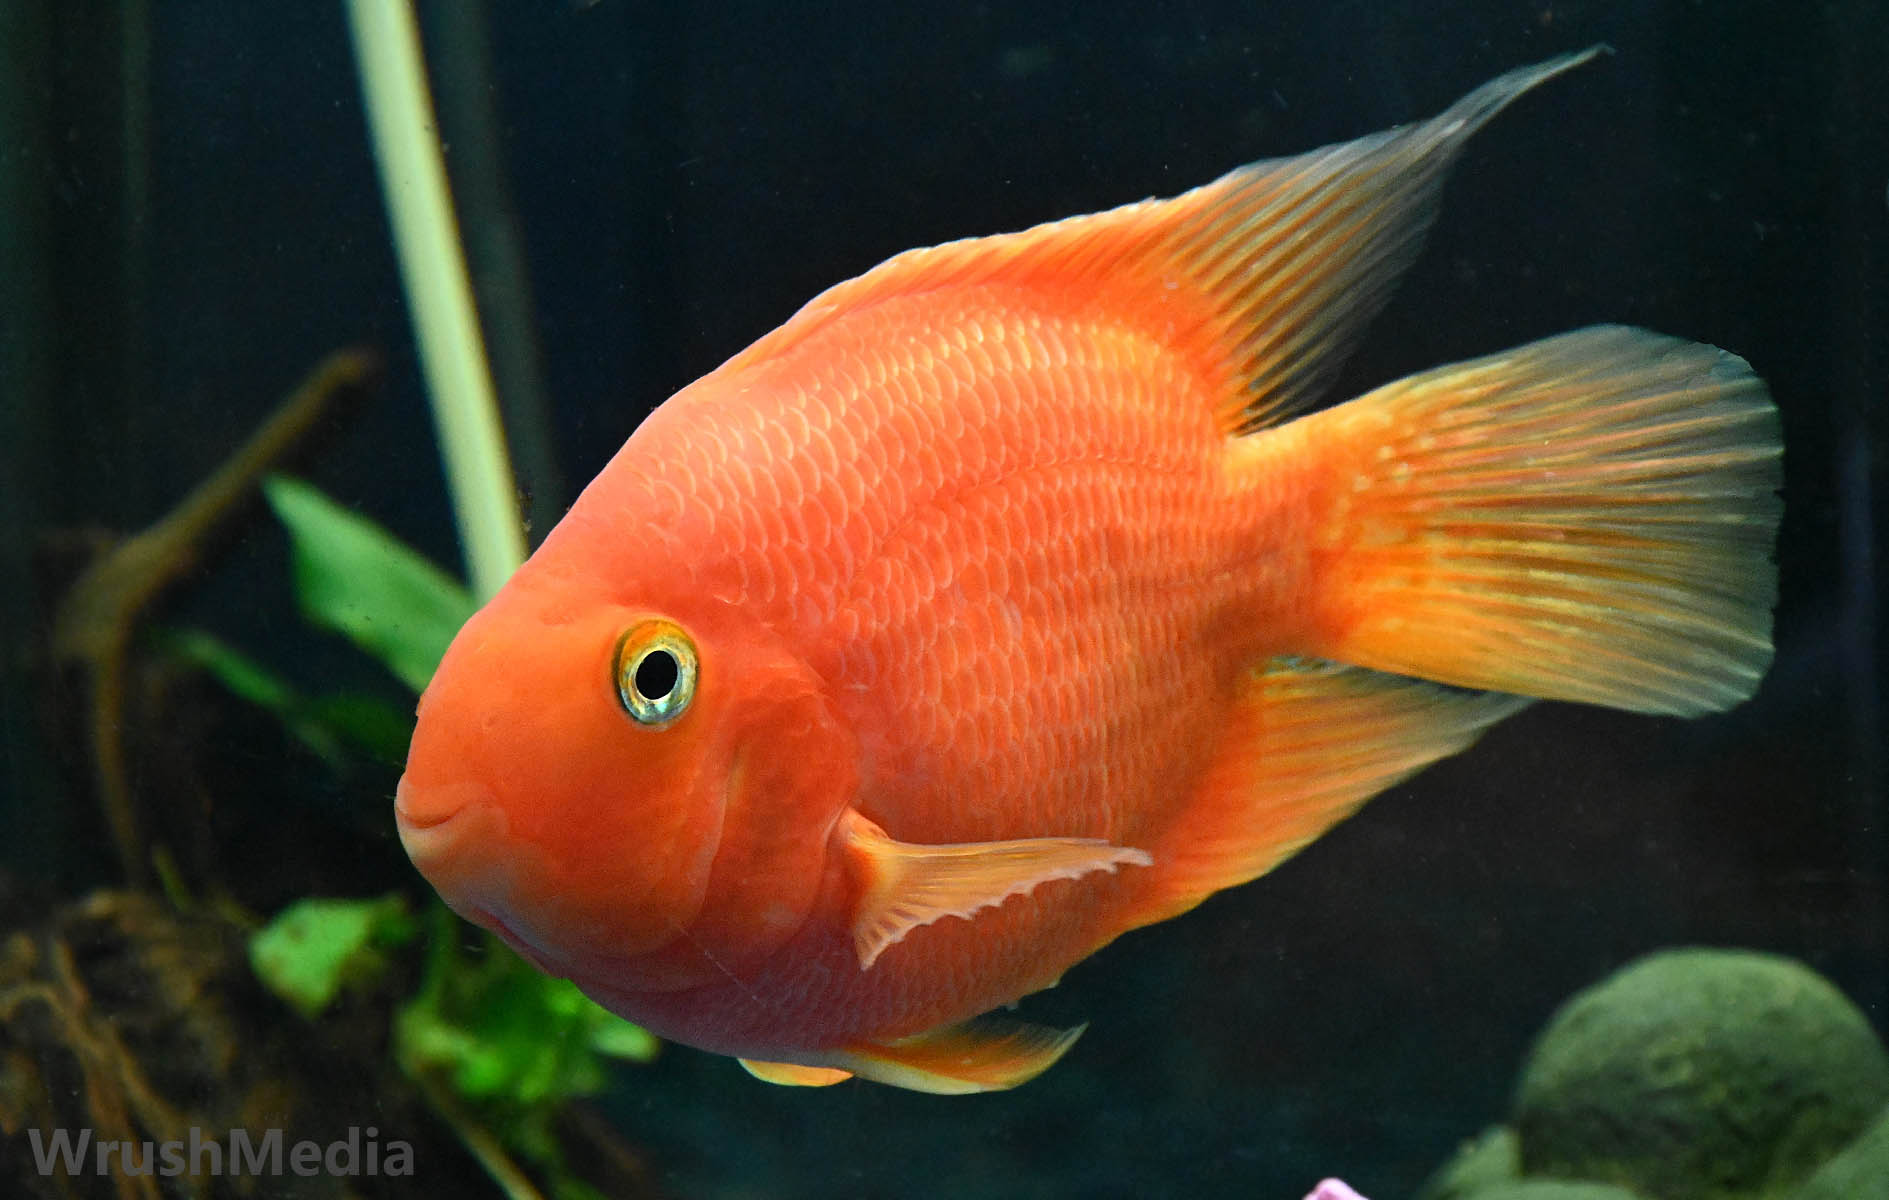 parrot fish, photo, Cichlid, blood red,